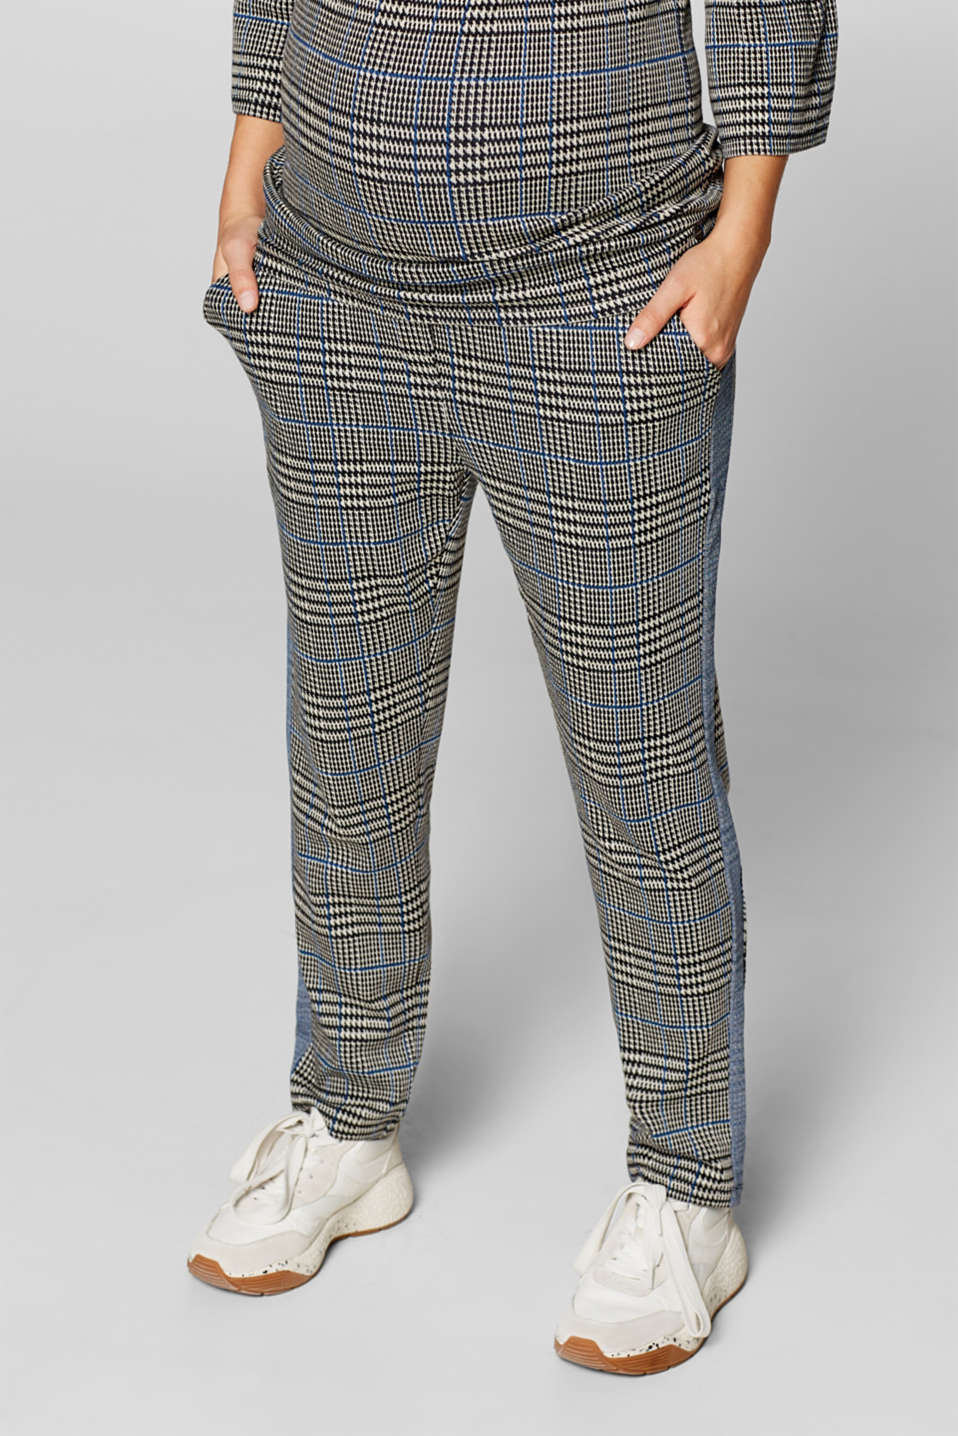 Cropped stretch jersey trousers with a wide waistband, LCBLACK, detail image number 6